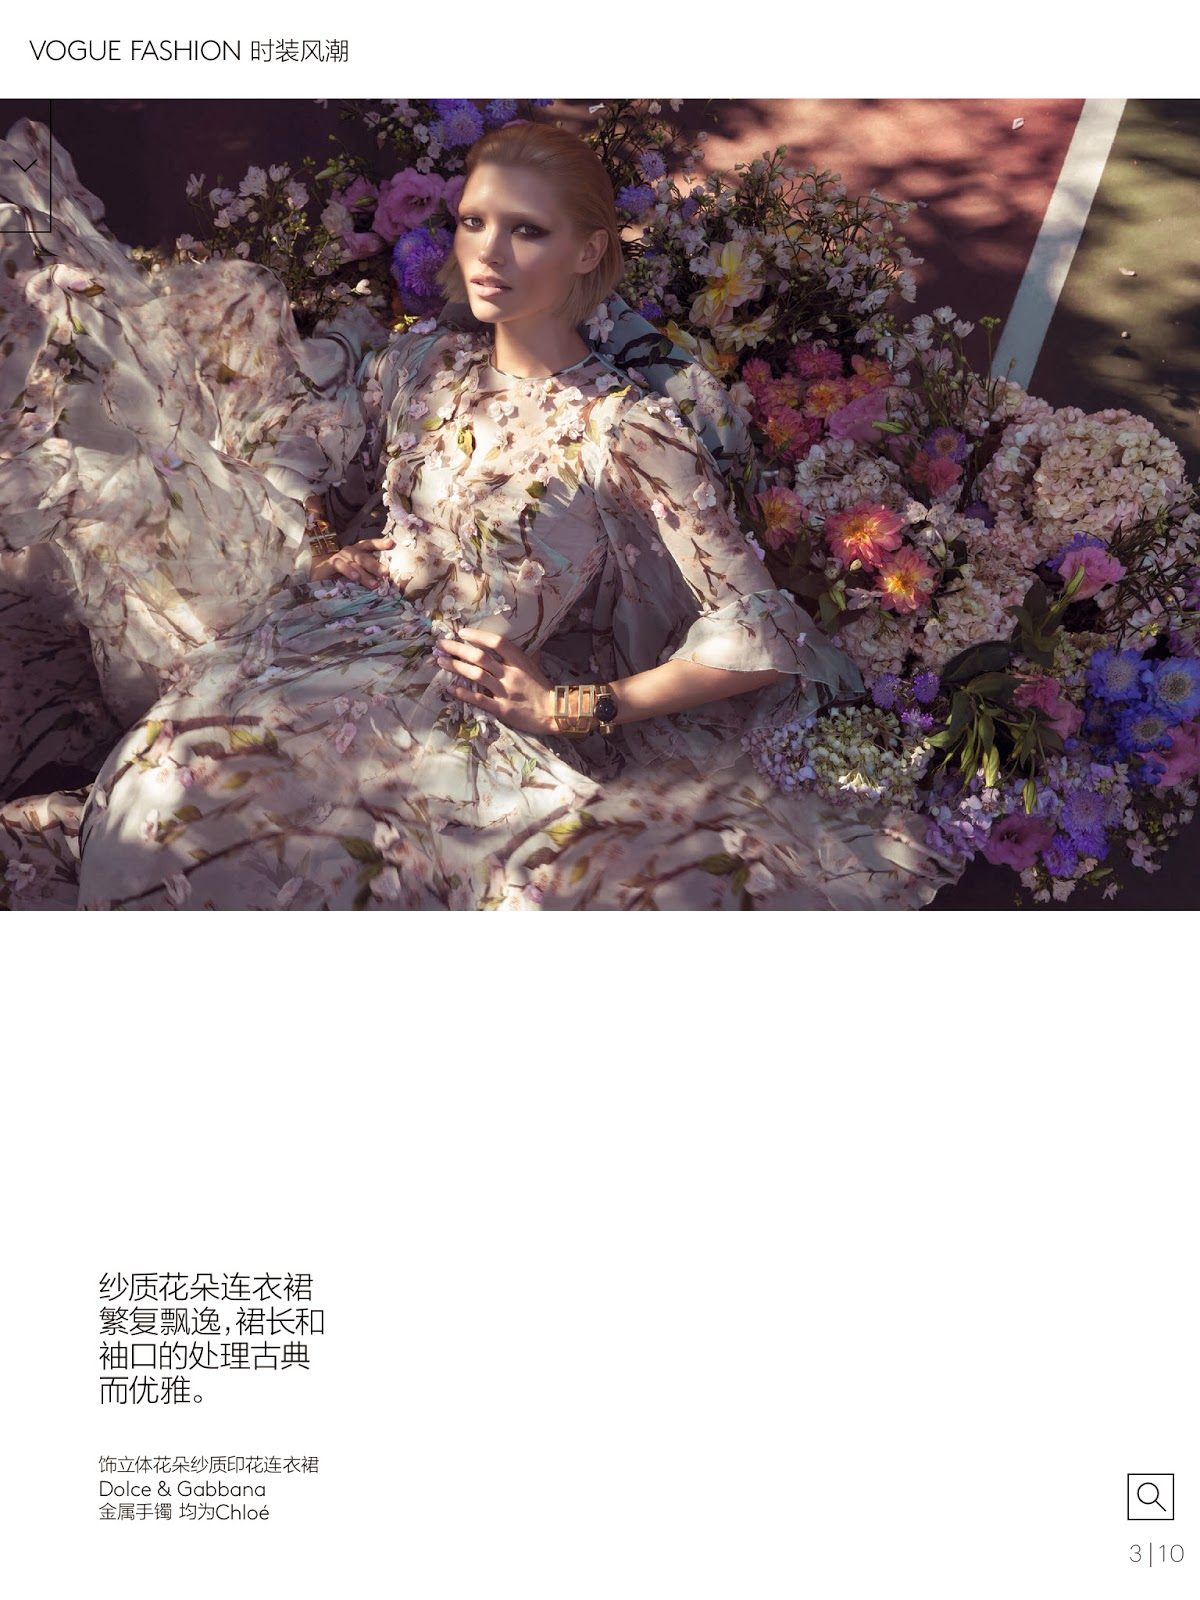 Hana Jirickova HQ Pictures Vogue China Magazine Photoshoot March 2014